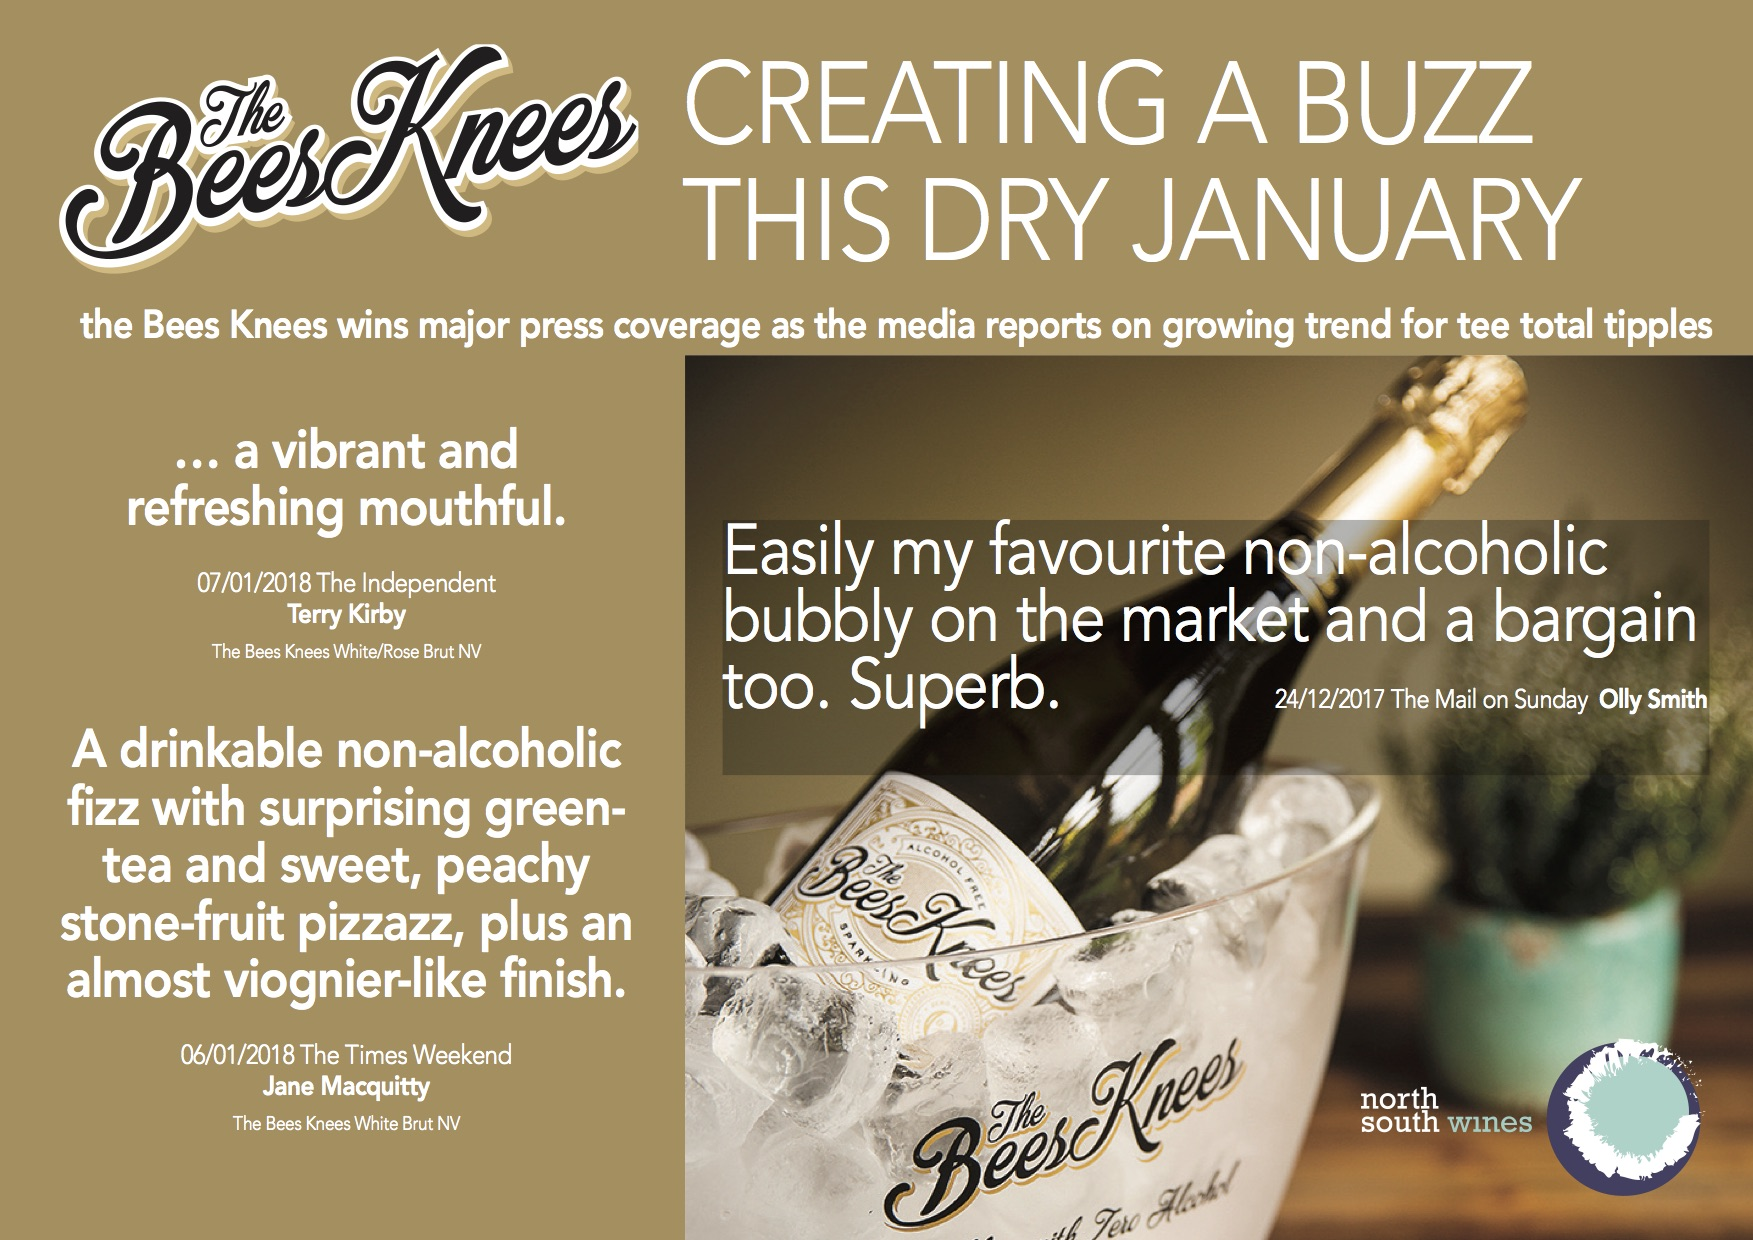 Bees Knees, Dry January